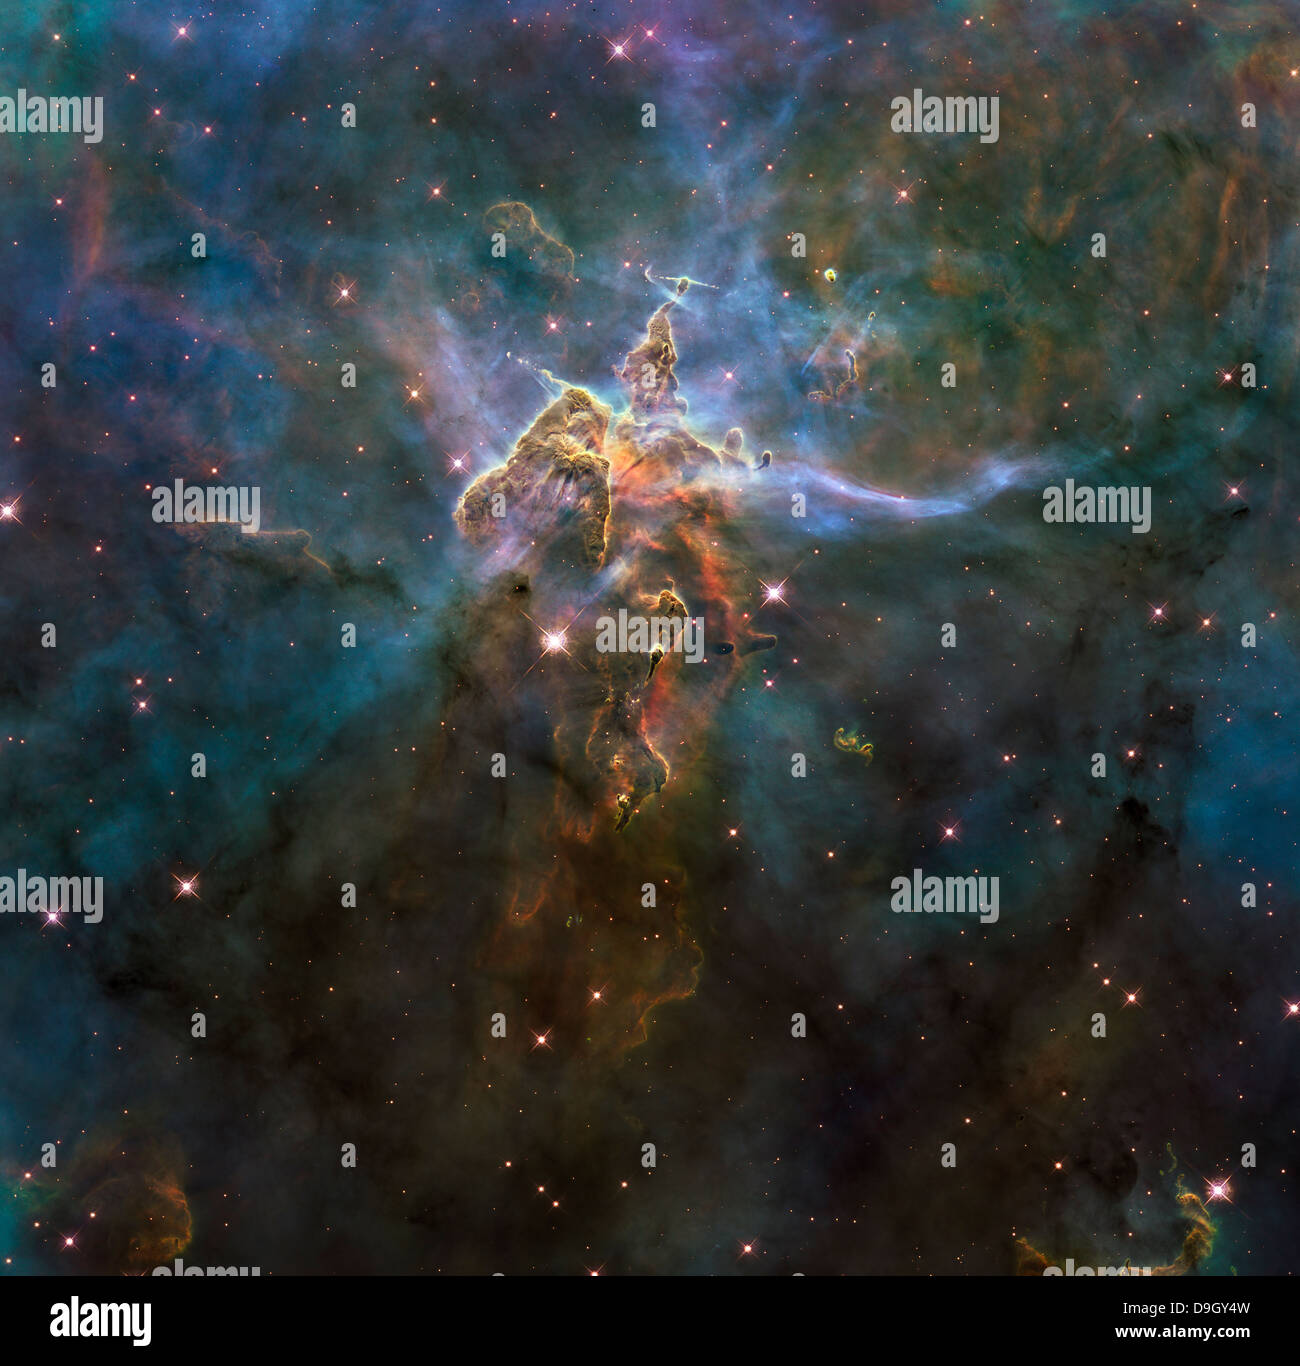 Carina Nebula Star-forming Pillars and Herbig-Haro Objects with Jets. - Stock Image